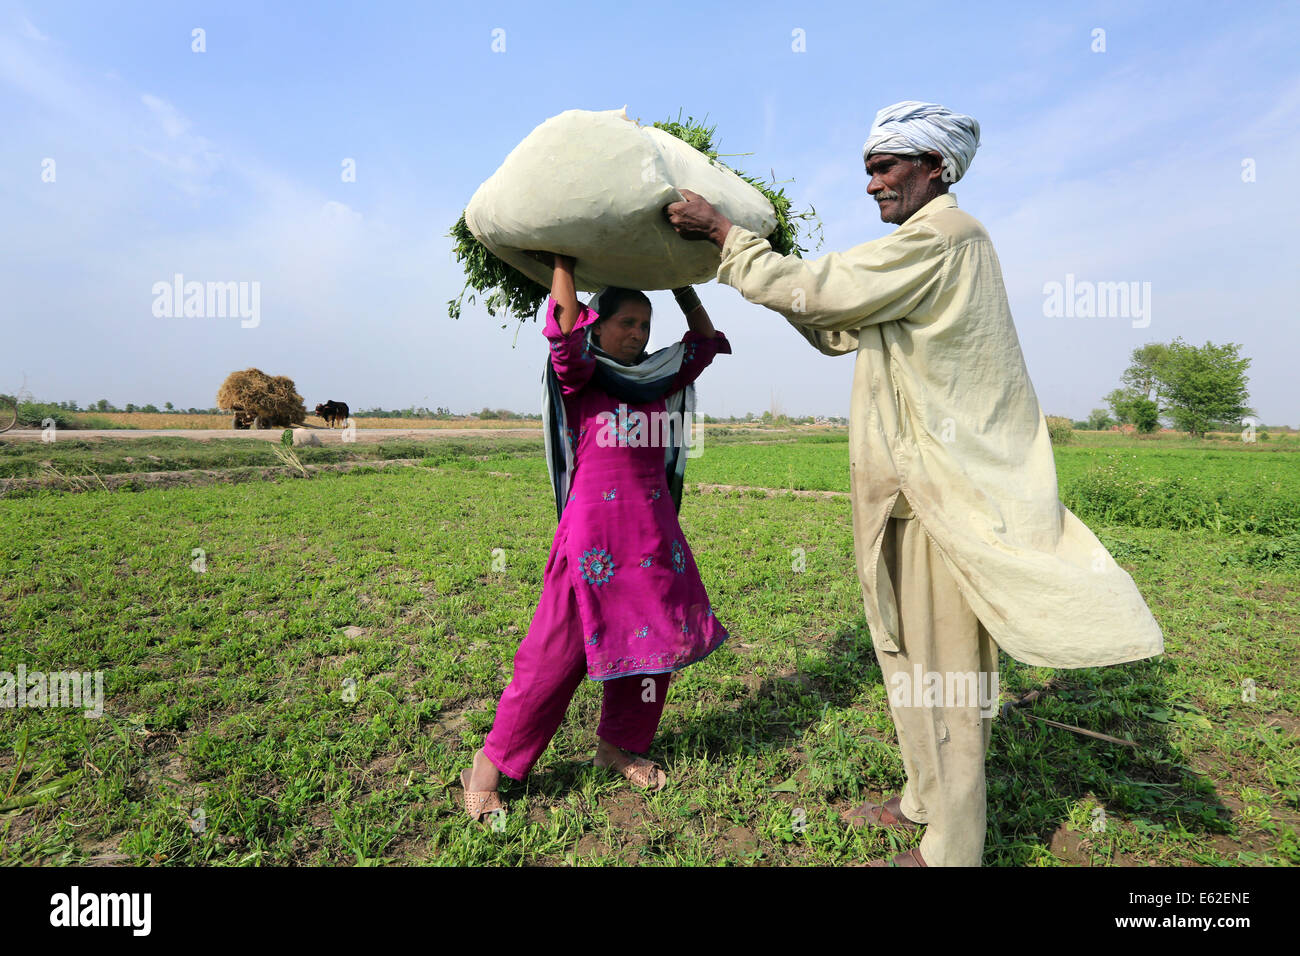 Farmers carry a sack of harvested clover to feed their animals, near Khuspur village, Punjab Province, Pakistan - Stock Image